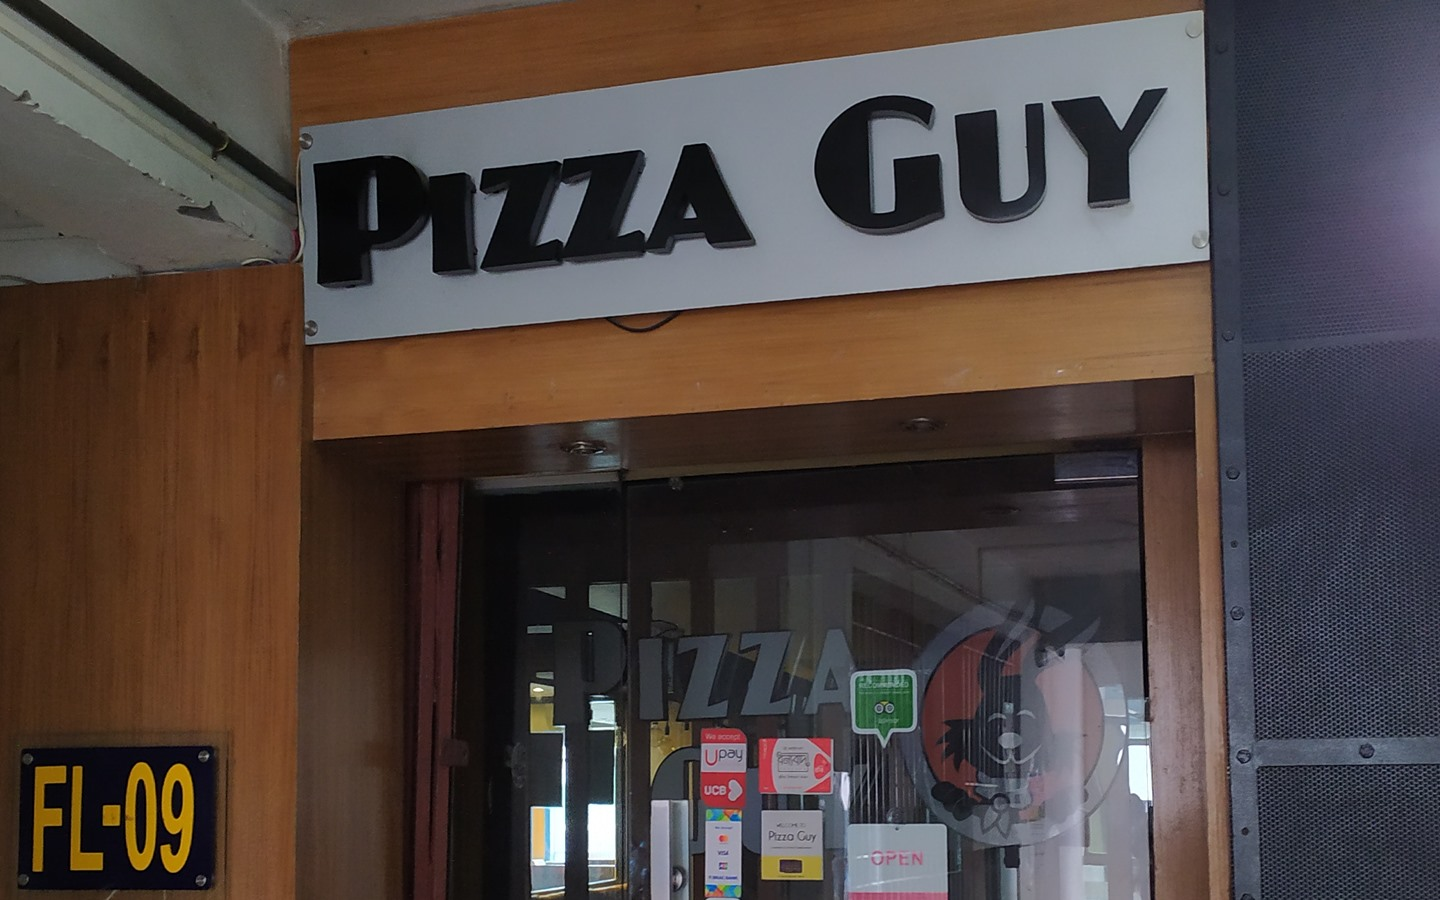 Exterior of Pizza Guy